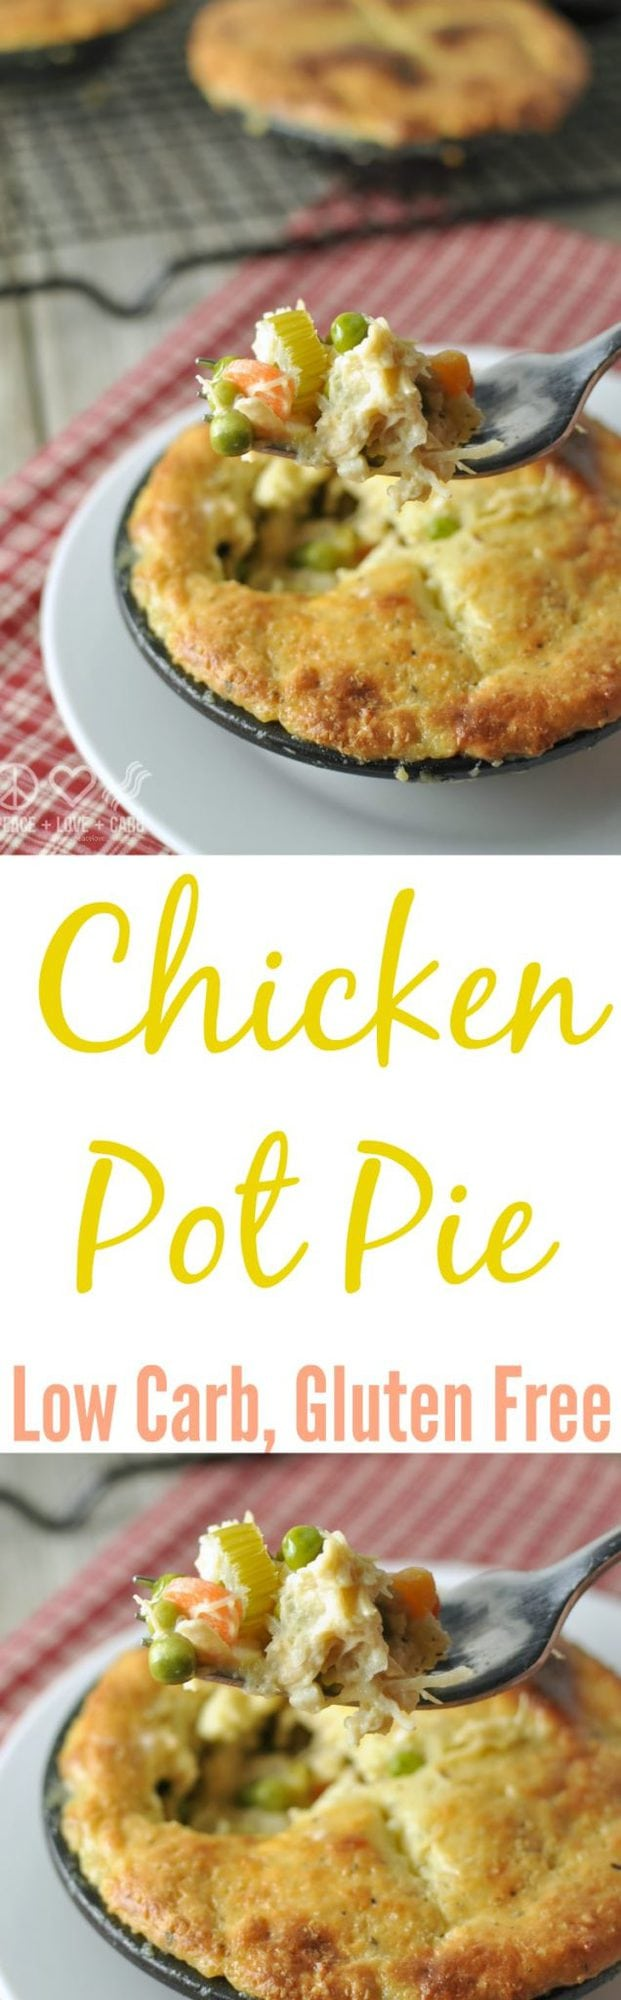 Chicken Pot Pie - Low Carb, Gluten Free Peace Love e Low Carb